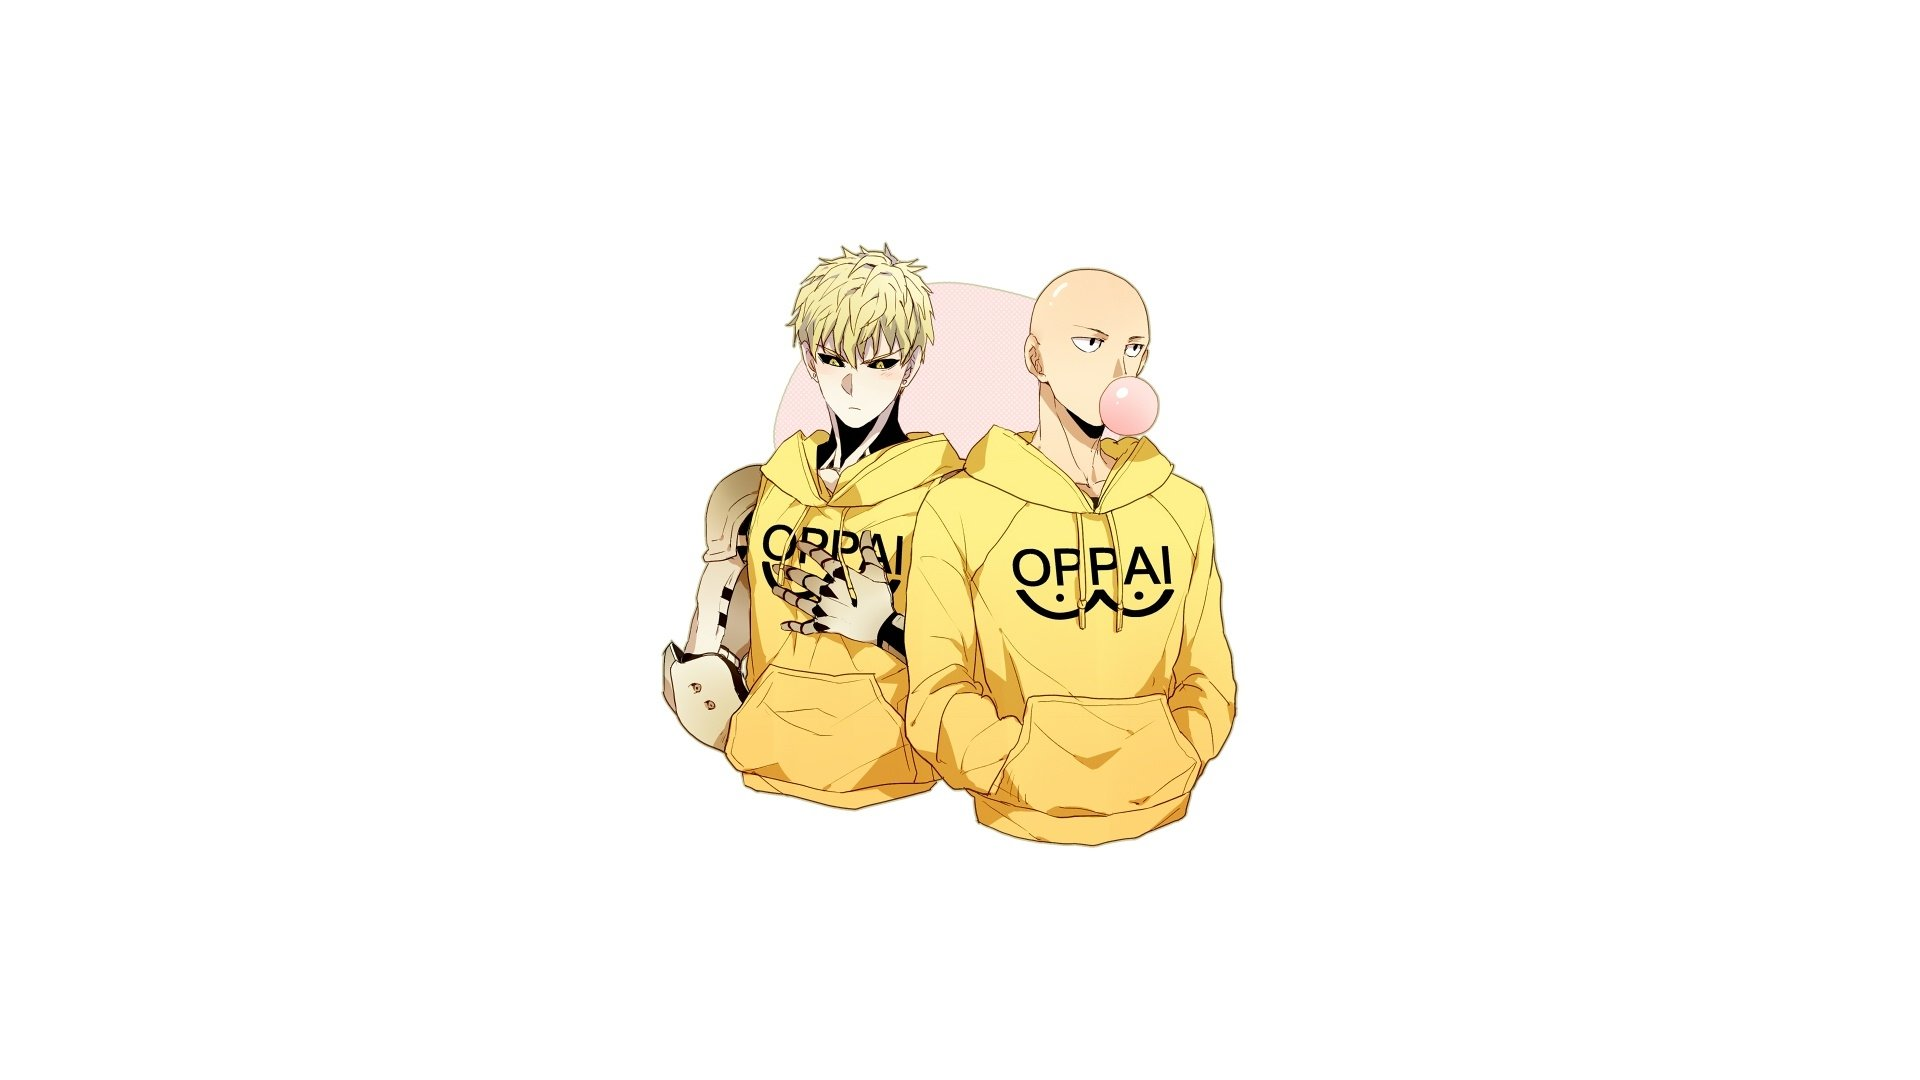 534 One-Punch Man HD Wallpapers | Background Images - Wallpaper Abyss